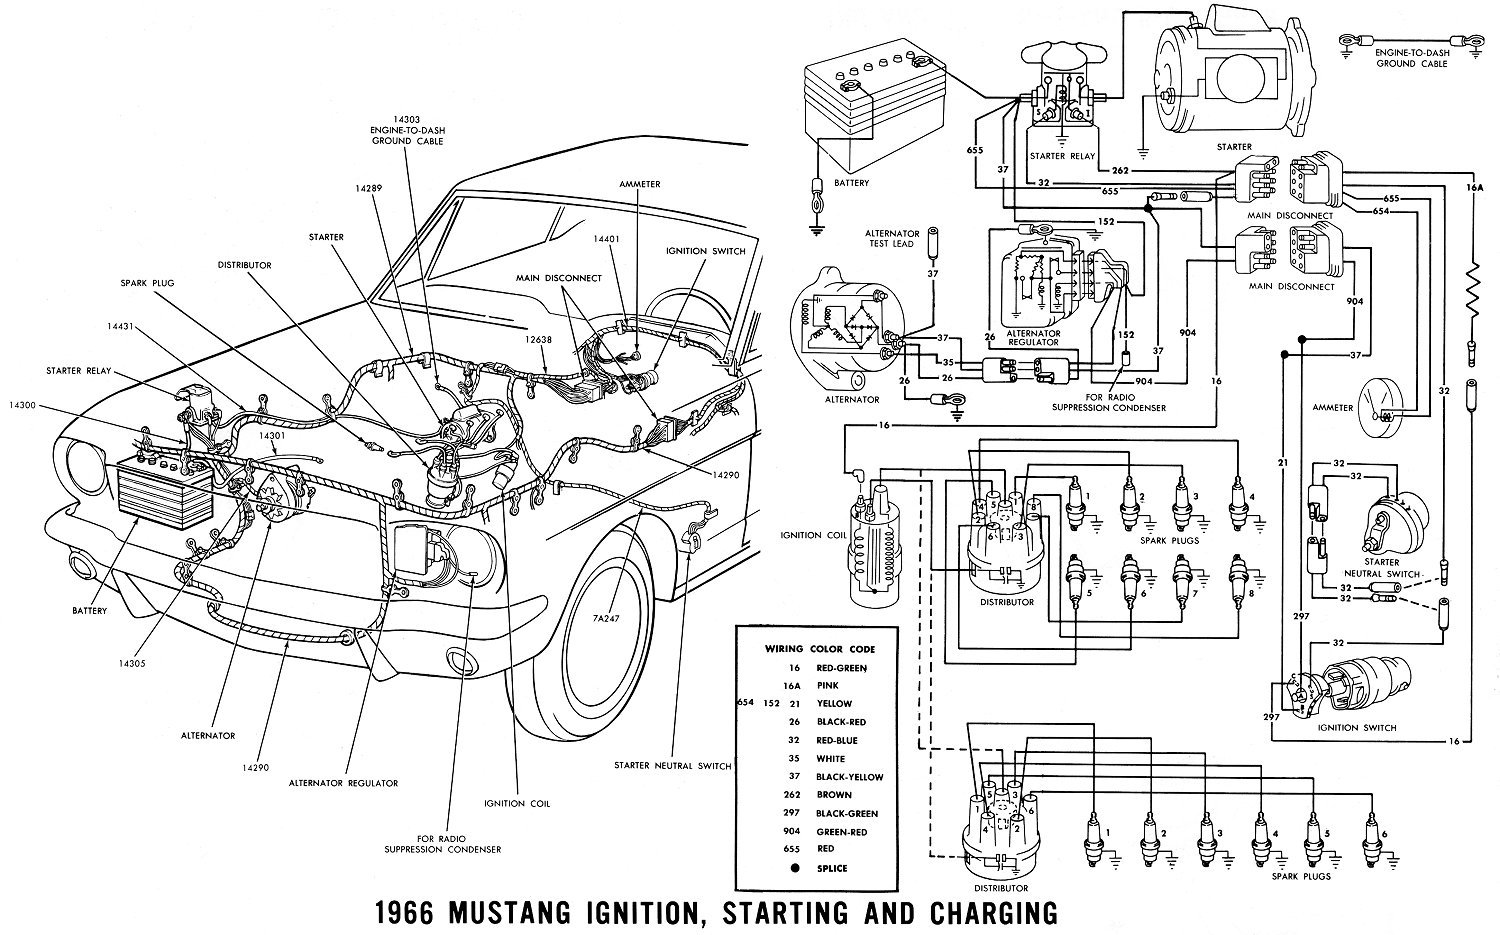 73 mustang wiring diagram